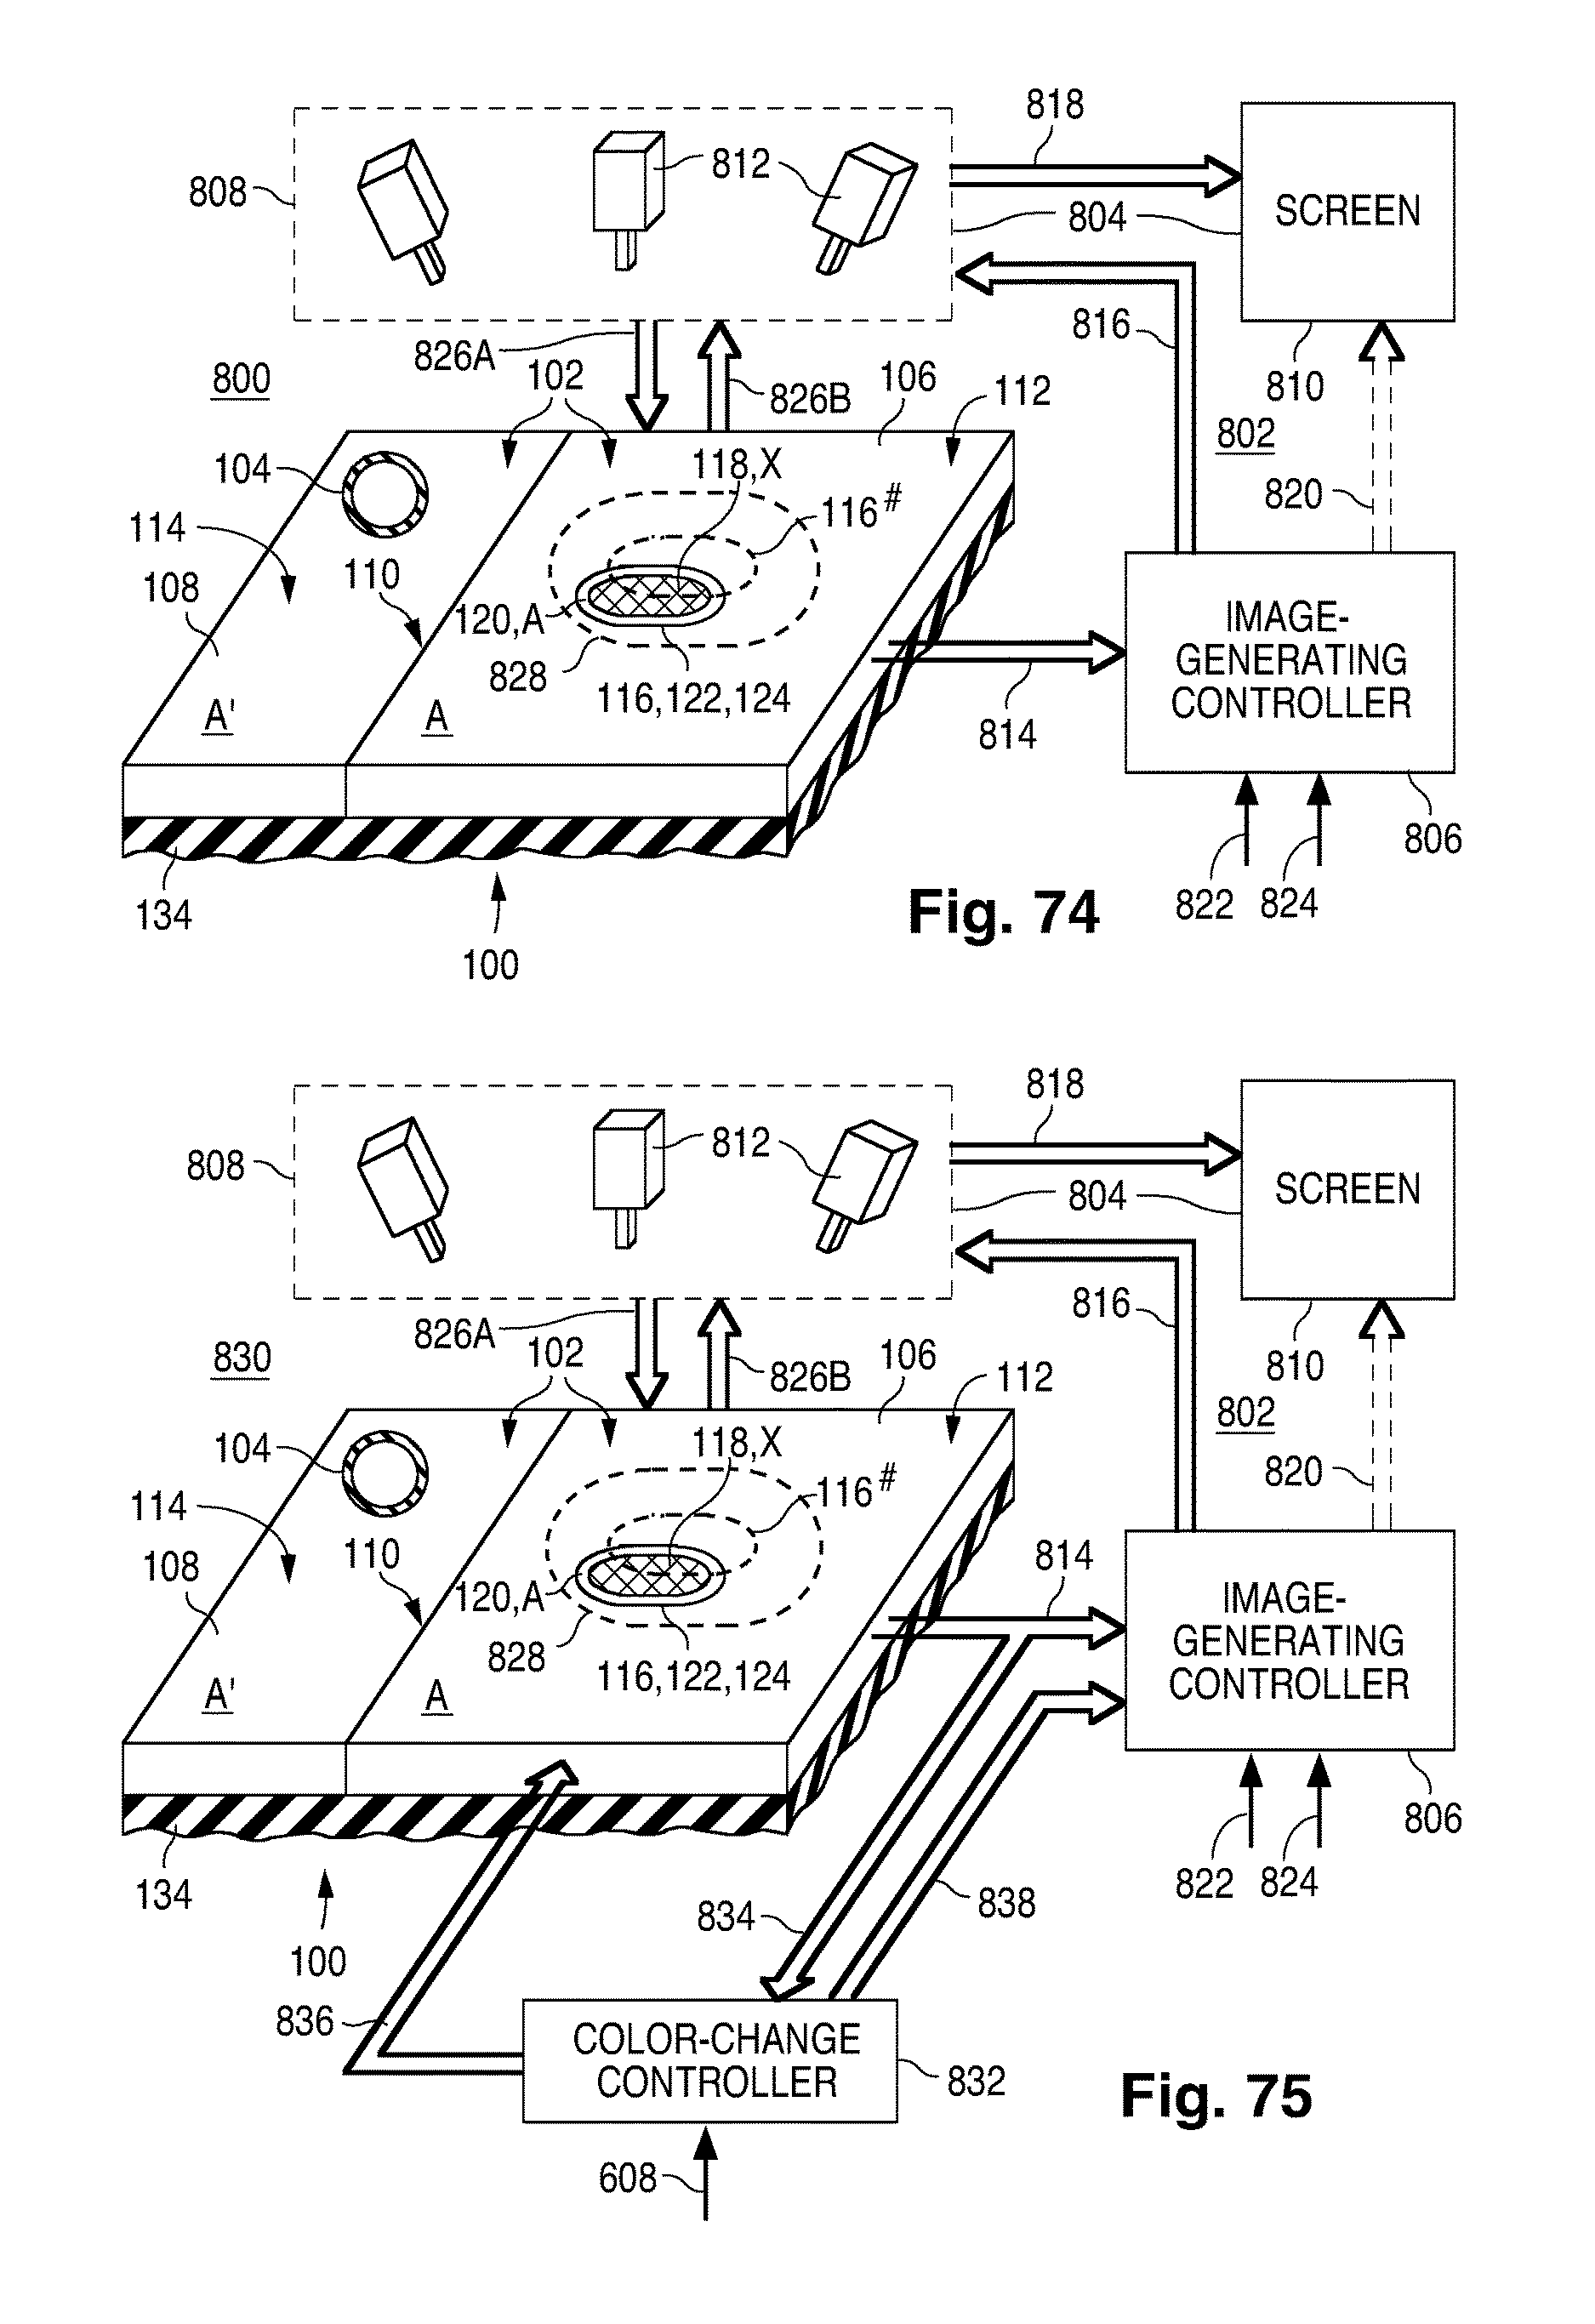 Patent Us 9744429 B1 Lm555 Electronics Schematic Diagram Two Stage Time Delay Circuit Part 29 Images